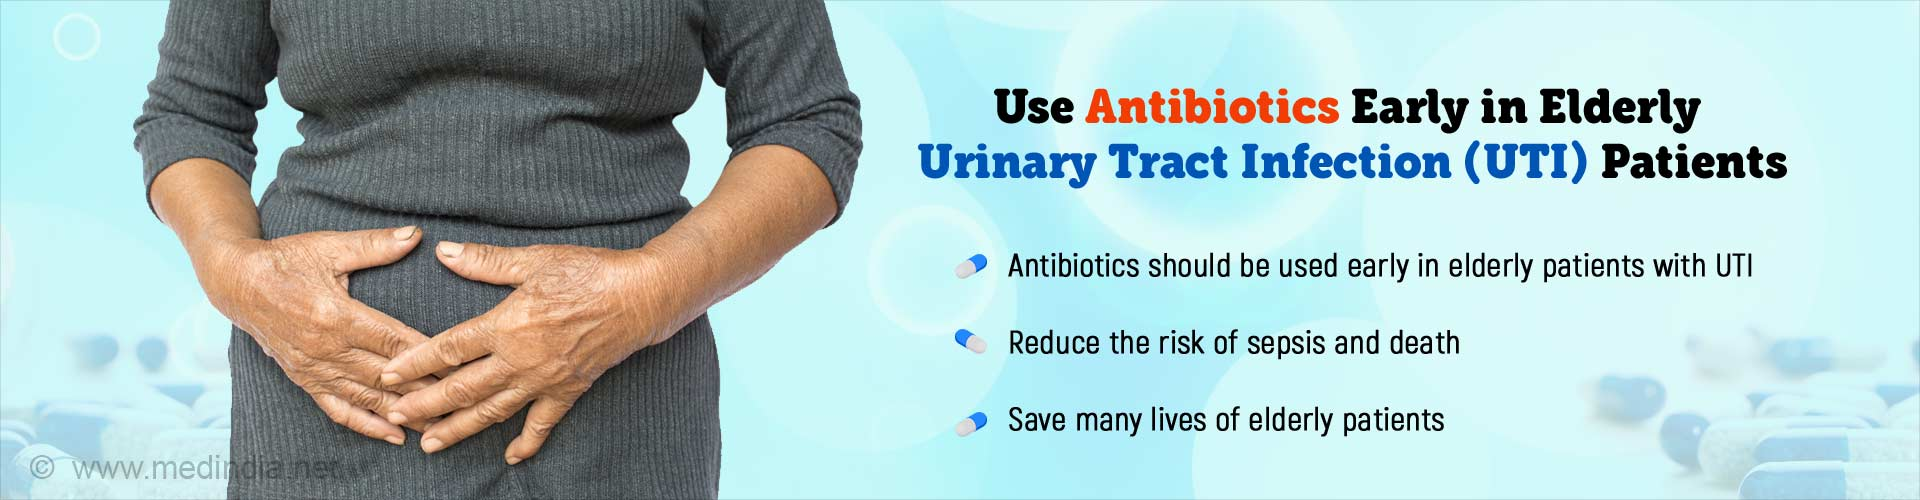 Use antibiotics early in elderly urinary tract infections (UTI) patients. Antibiotics should be used early in elderly patients with UTI. Reduces the risk of sepsis and death. Saves many lives of elderly patients.